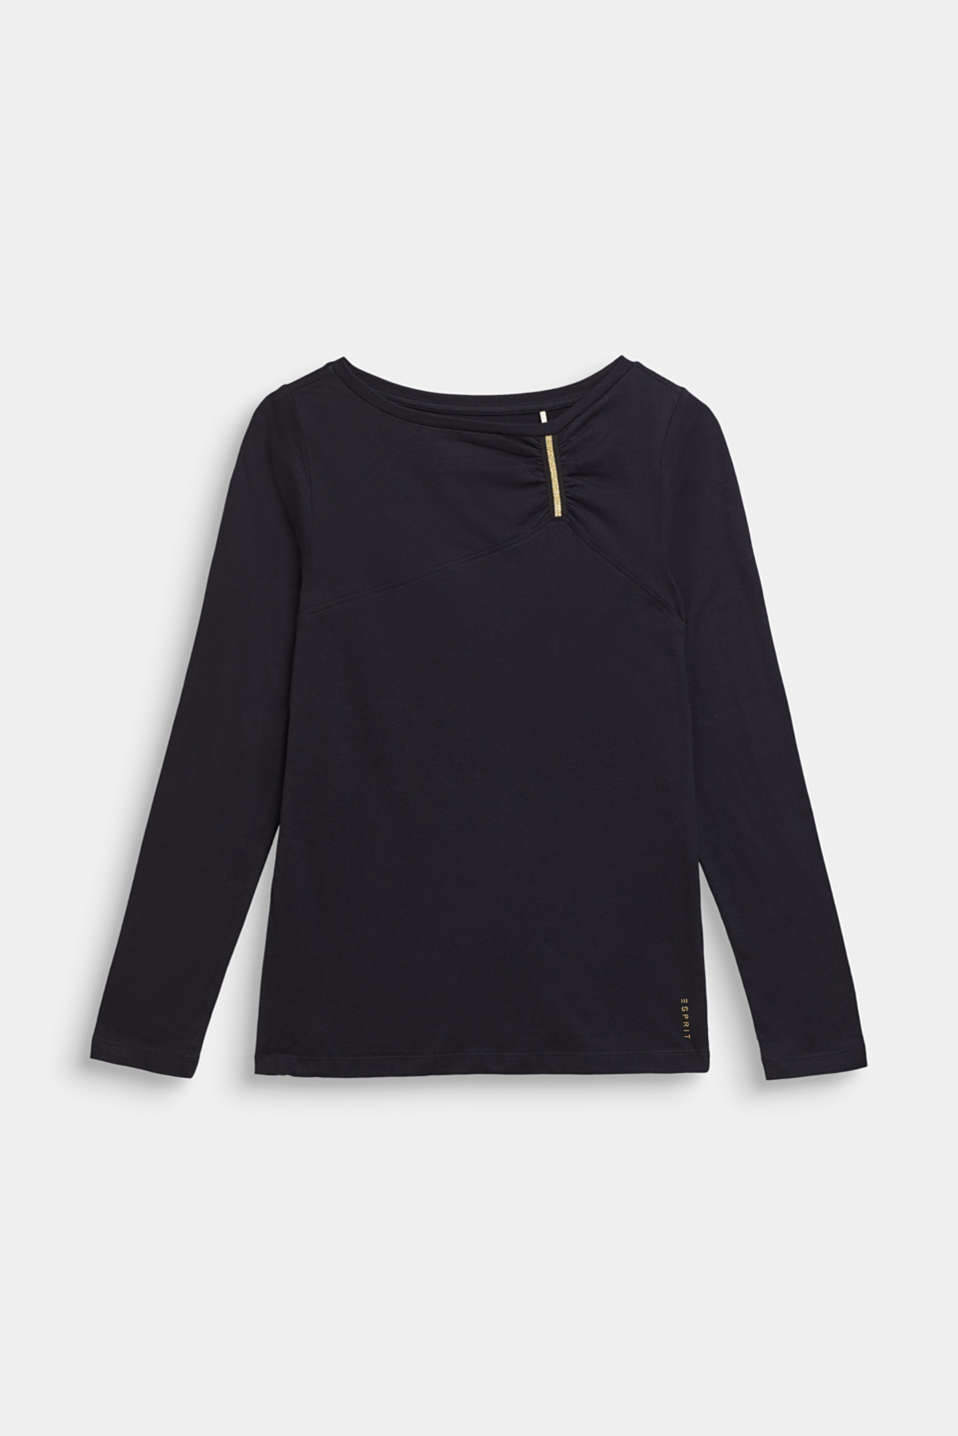 Esprit - Long sleeve top with a glitter detail, 100% cotton